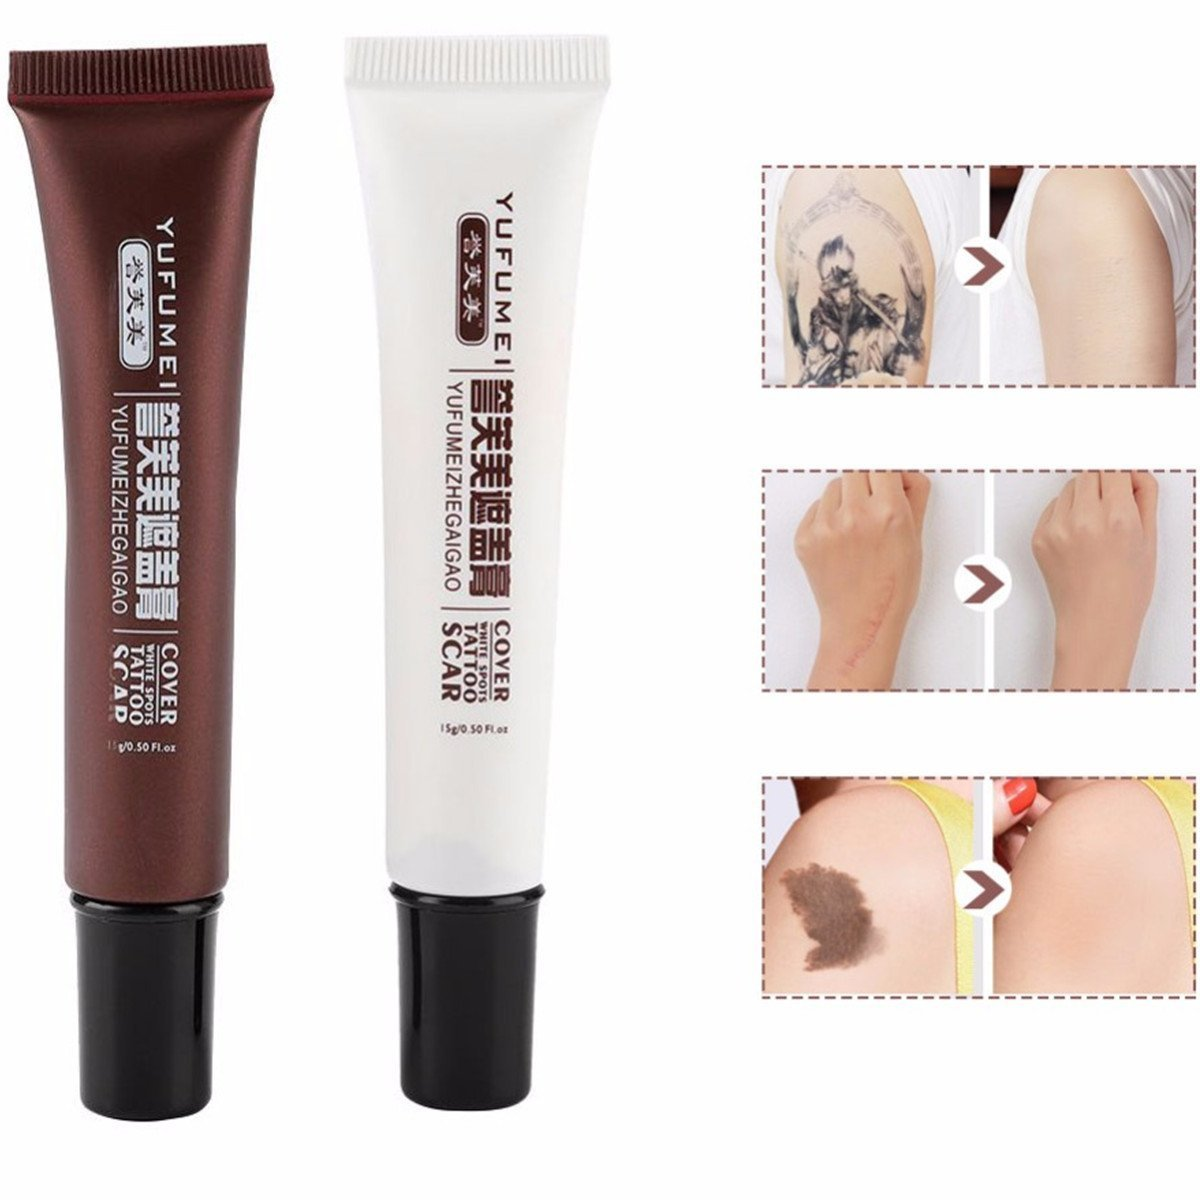 Amareu Tattoo Concealer - Hiding Spots Birthmarks Makeup Cover Up Cream Set Waterproof Cover Ance Scar and Tattoo